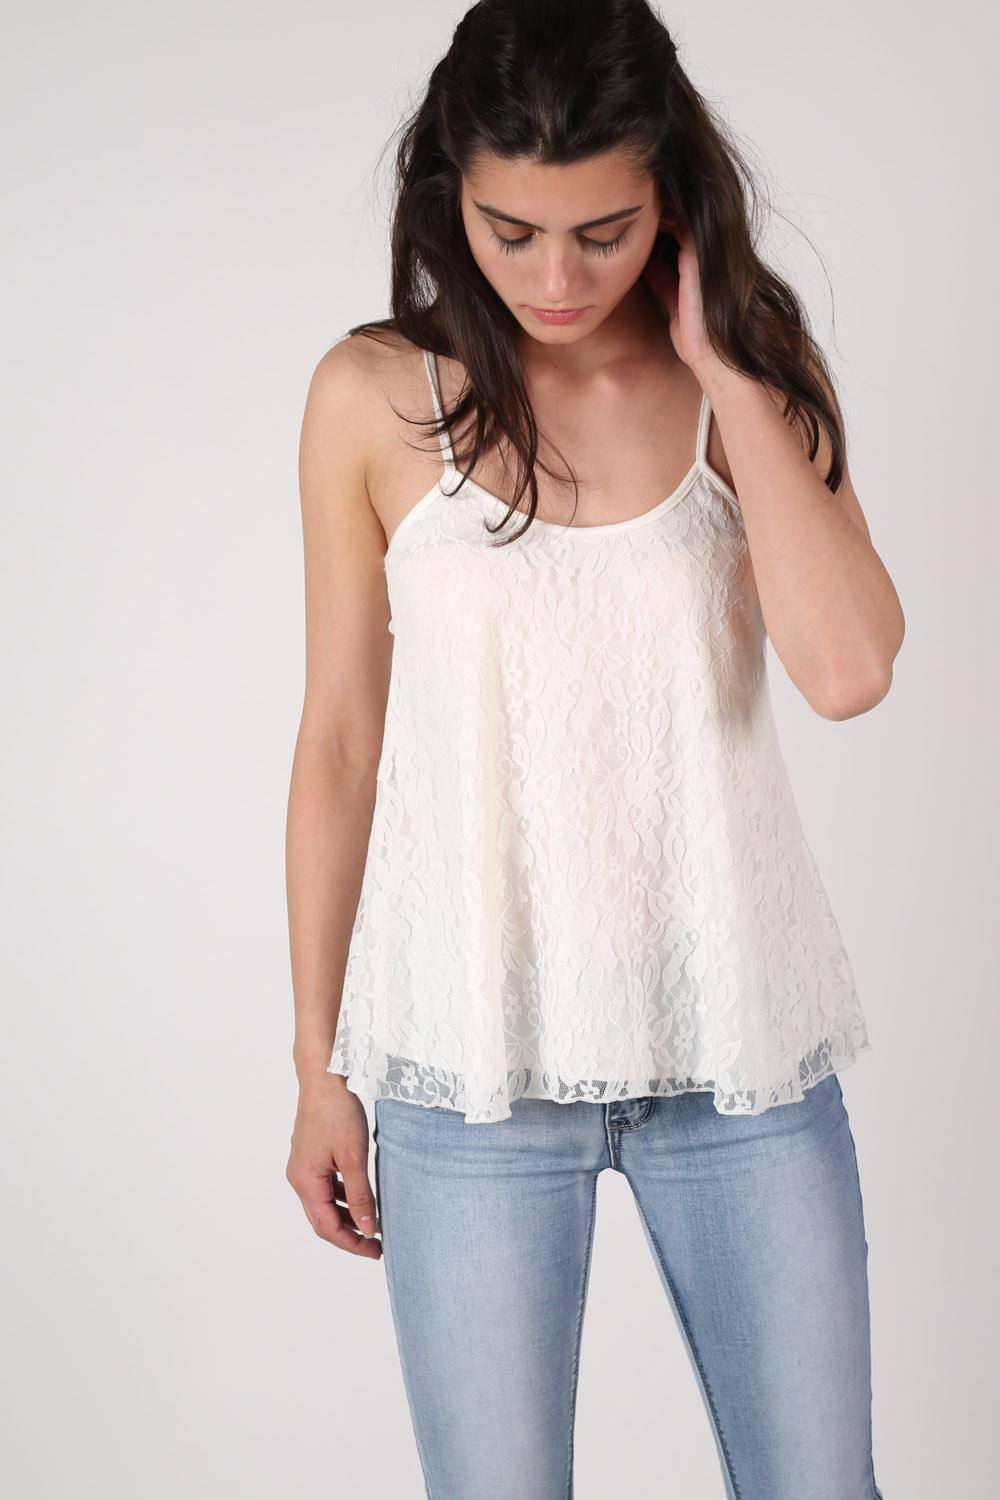 Lace Swing Camisole Top in Cream 0